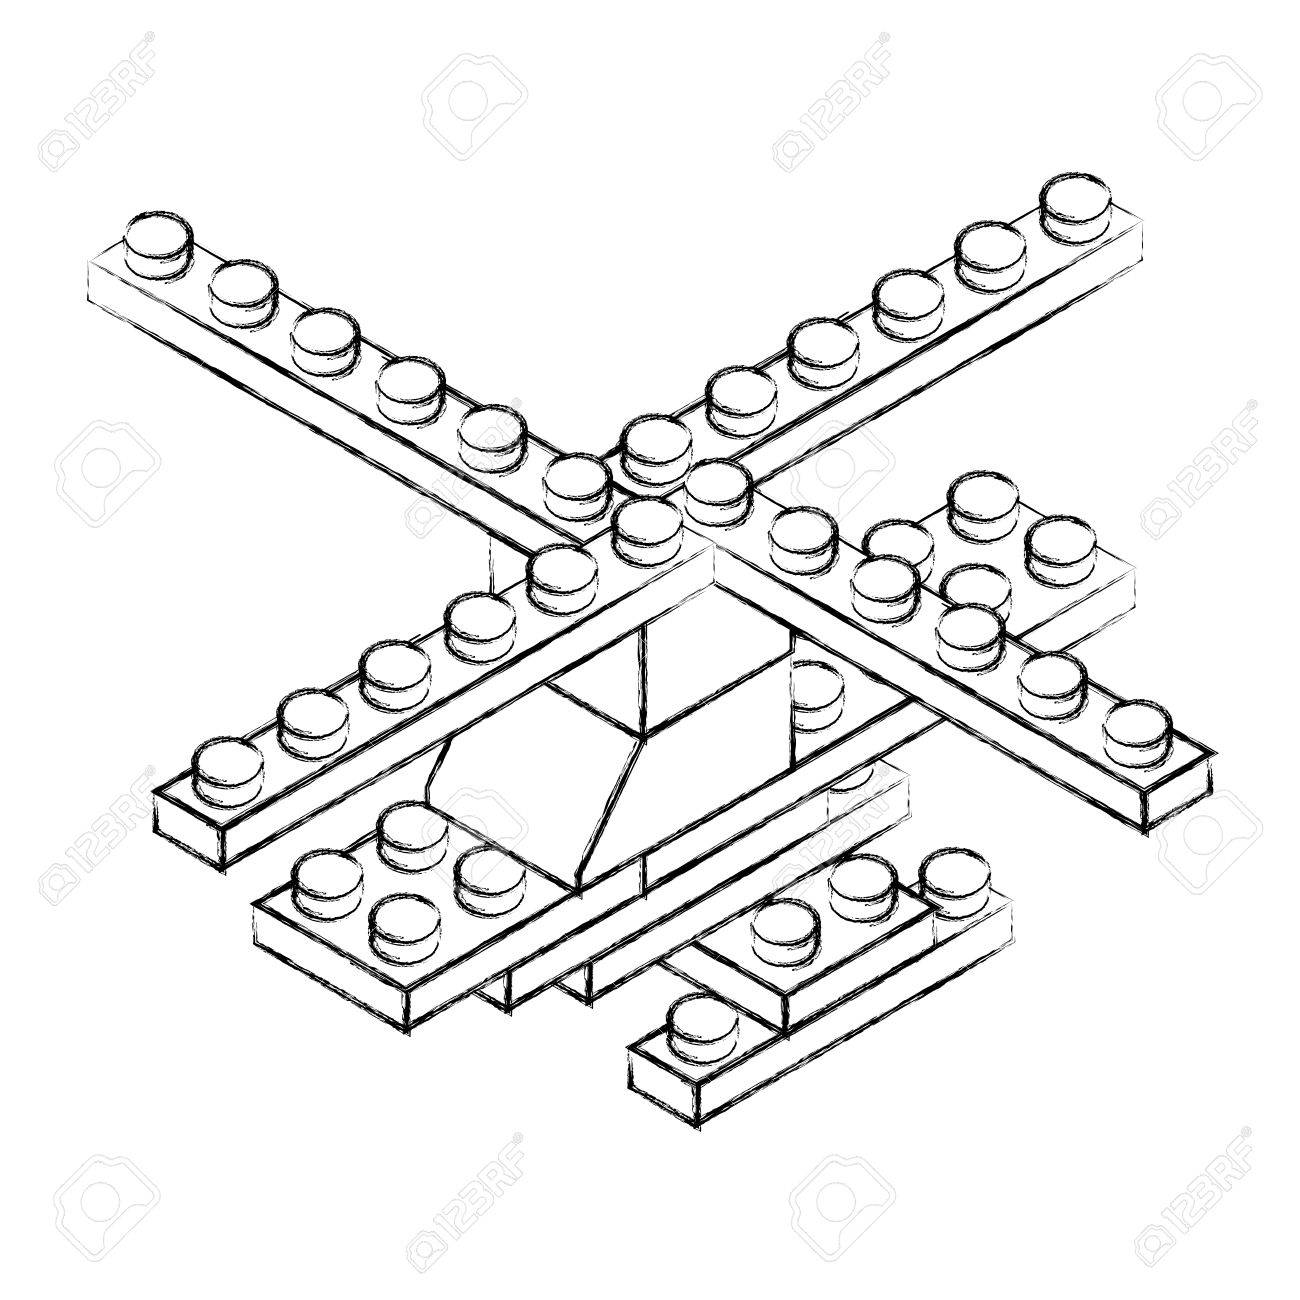 1300x1300 Sketch Draw Helicopter Toy Building Block Bricks Graphic Design